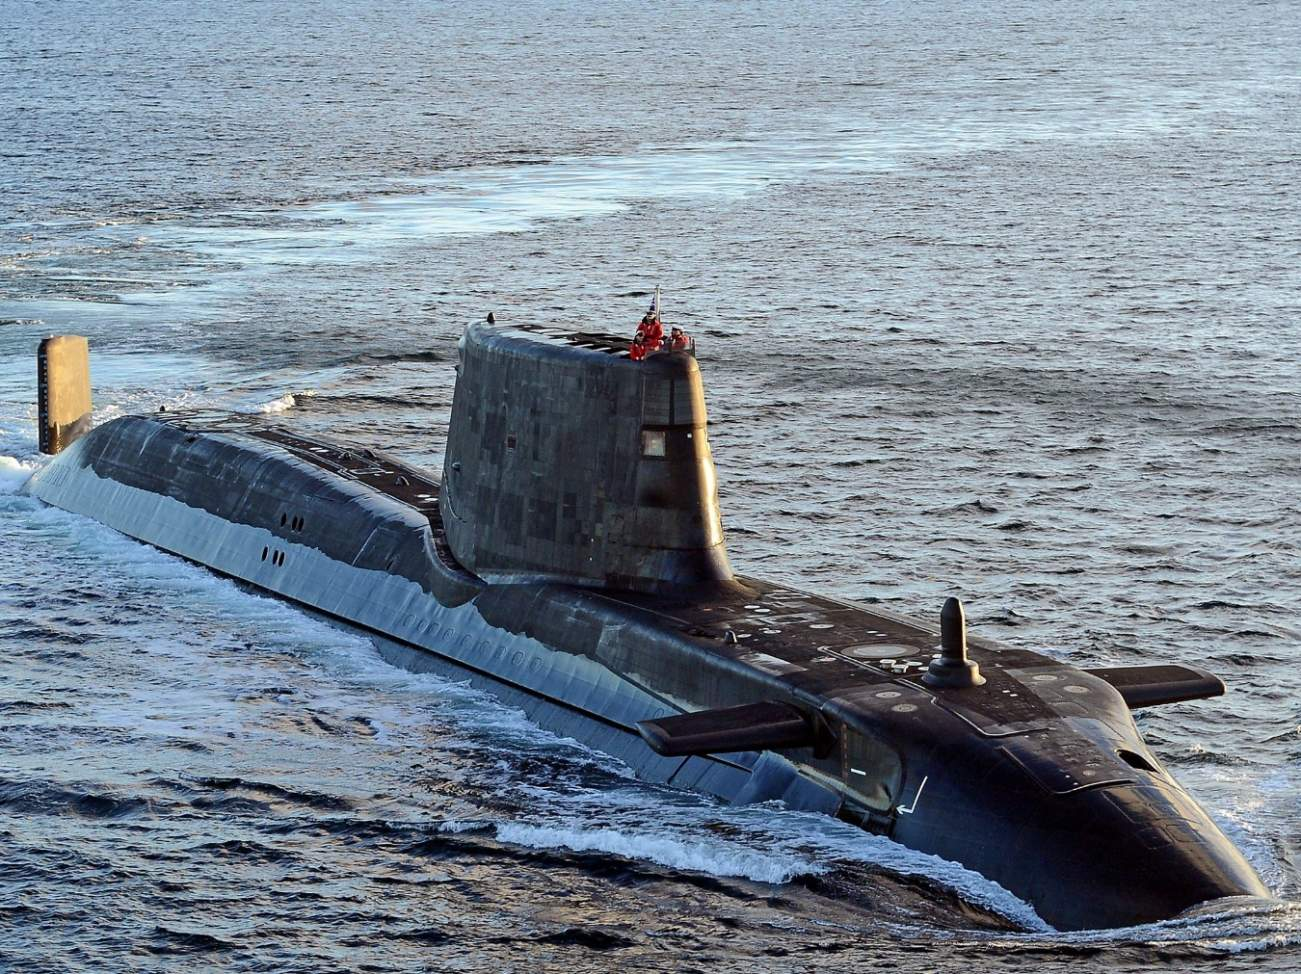 Russia Is Worried About Britain's Astute-Class Submarines